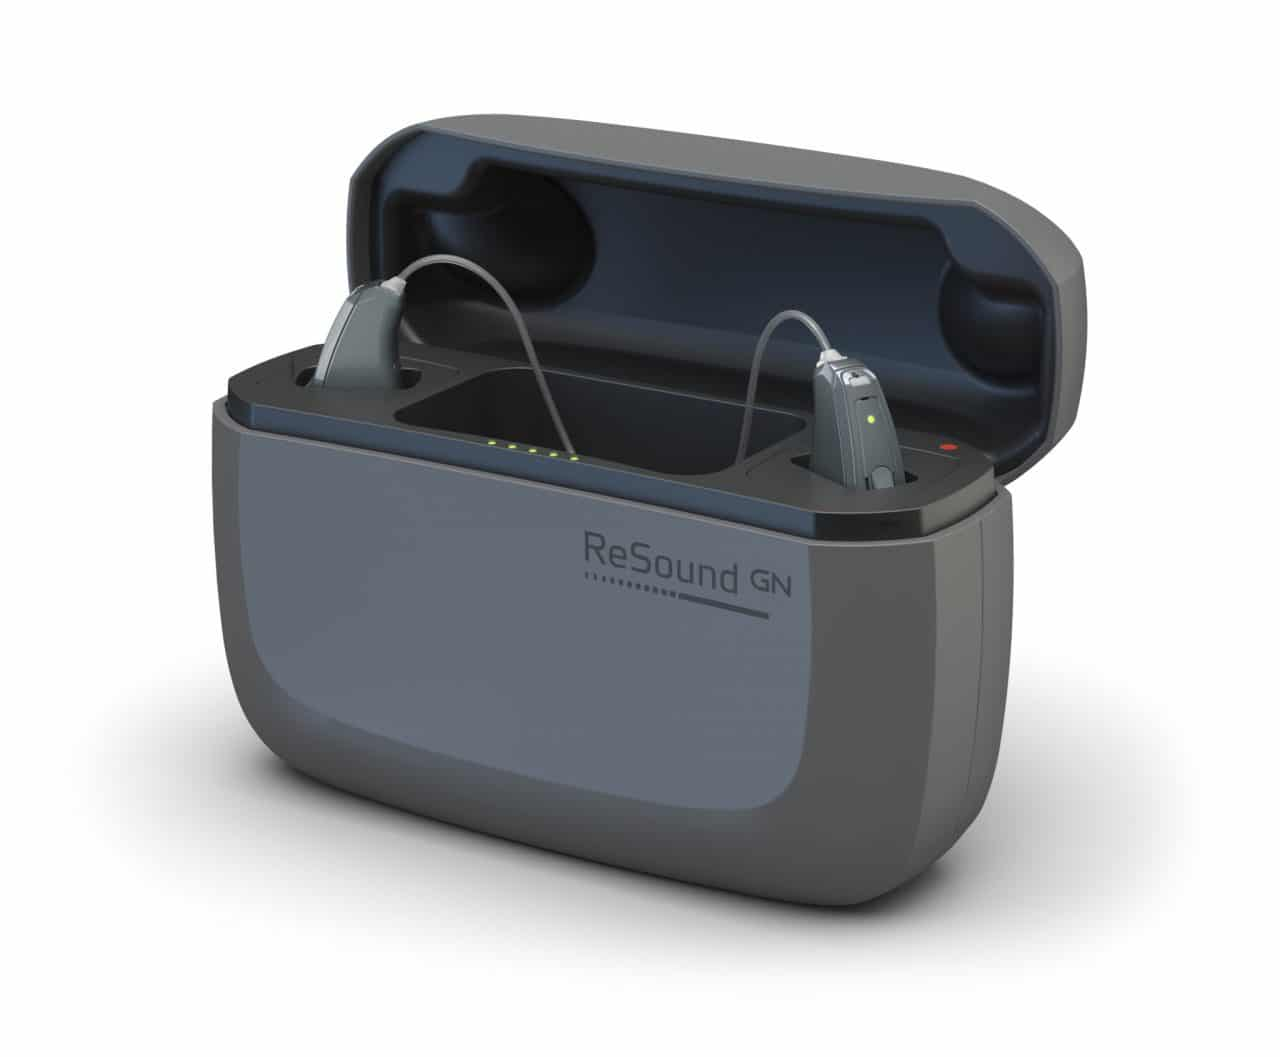 ReSound hearing aid charger